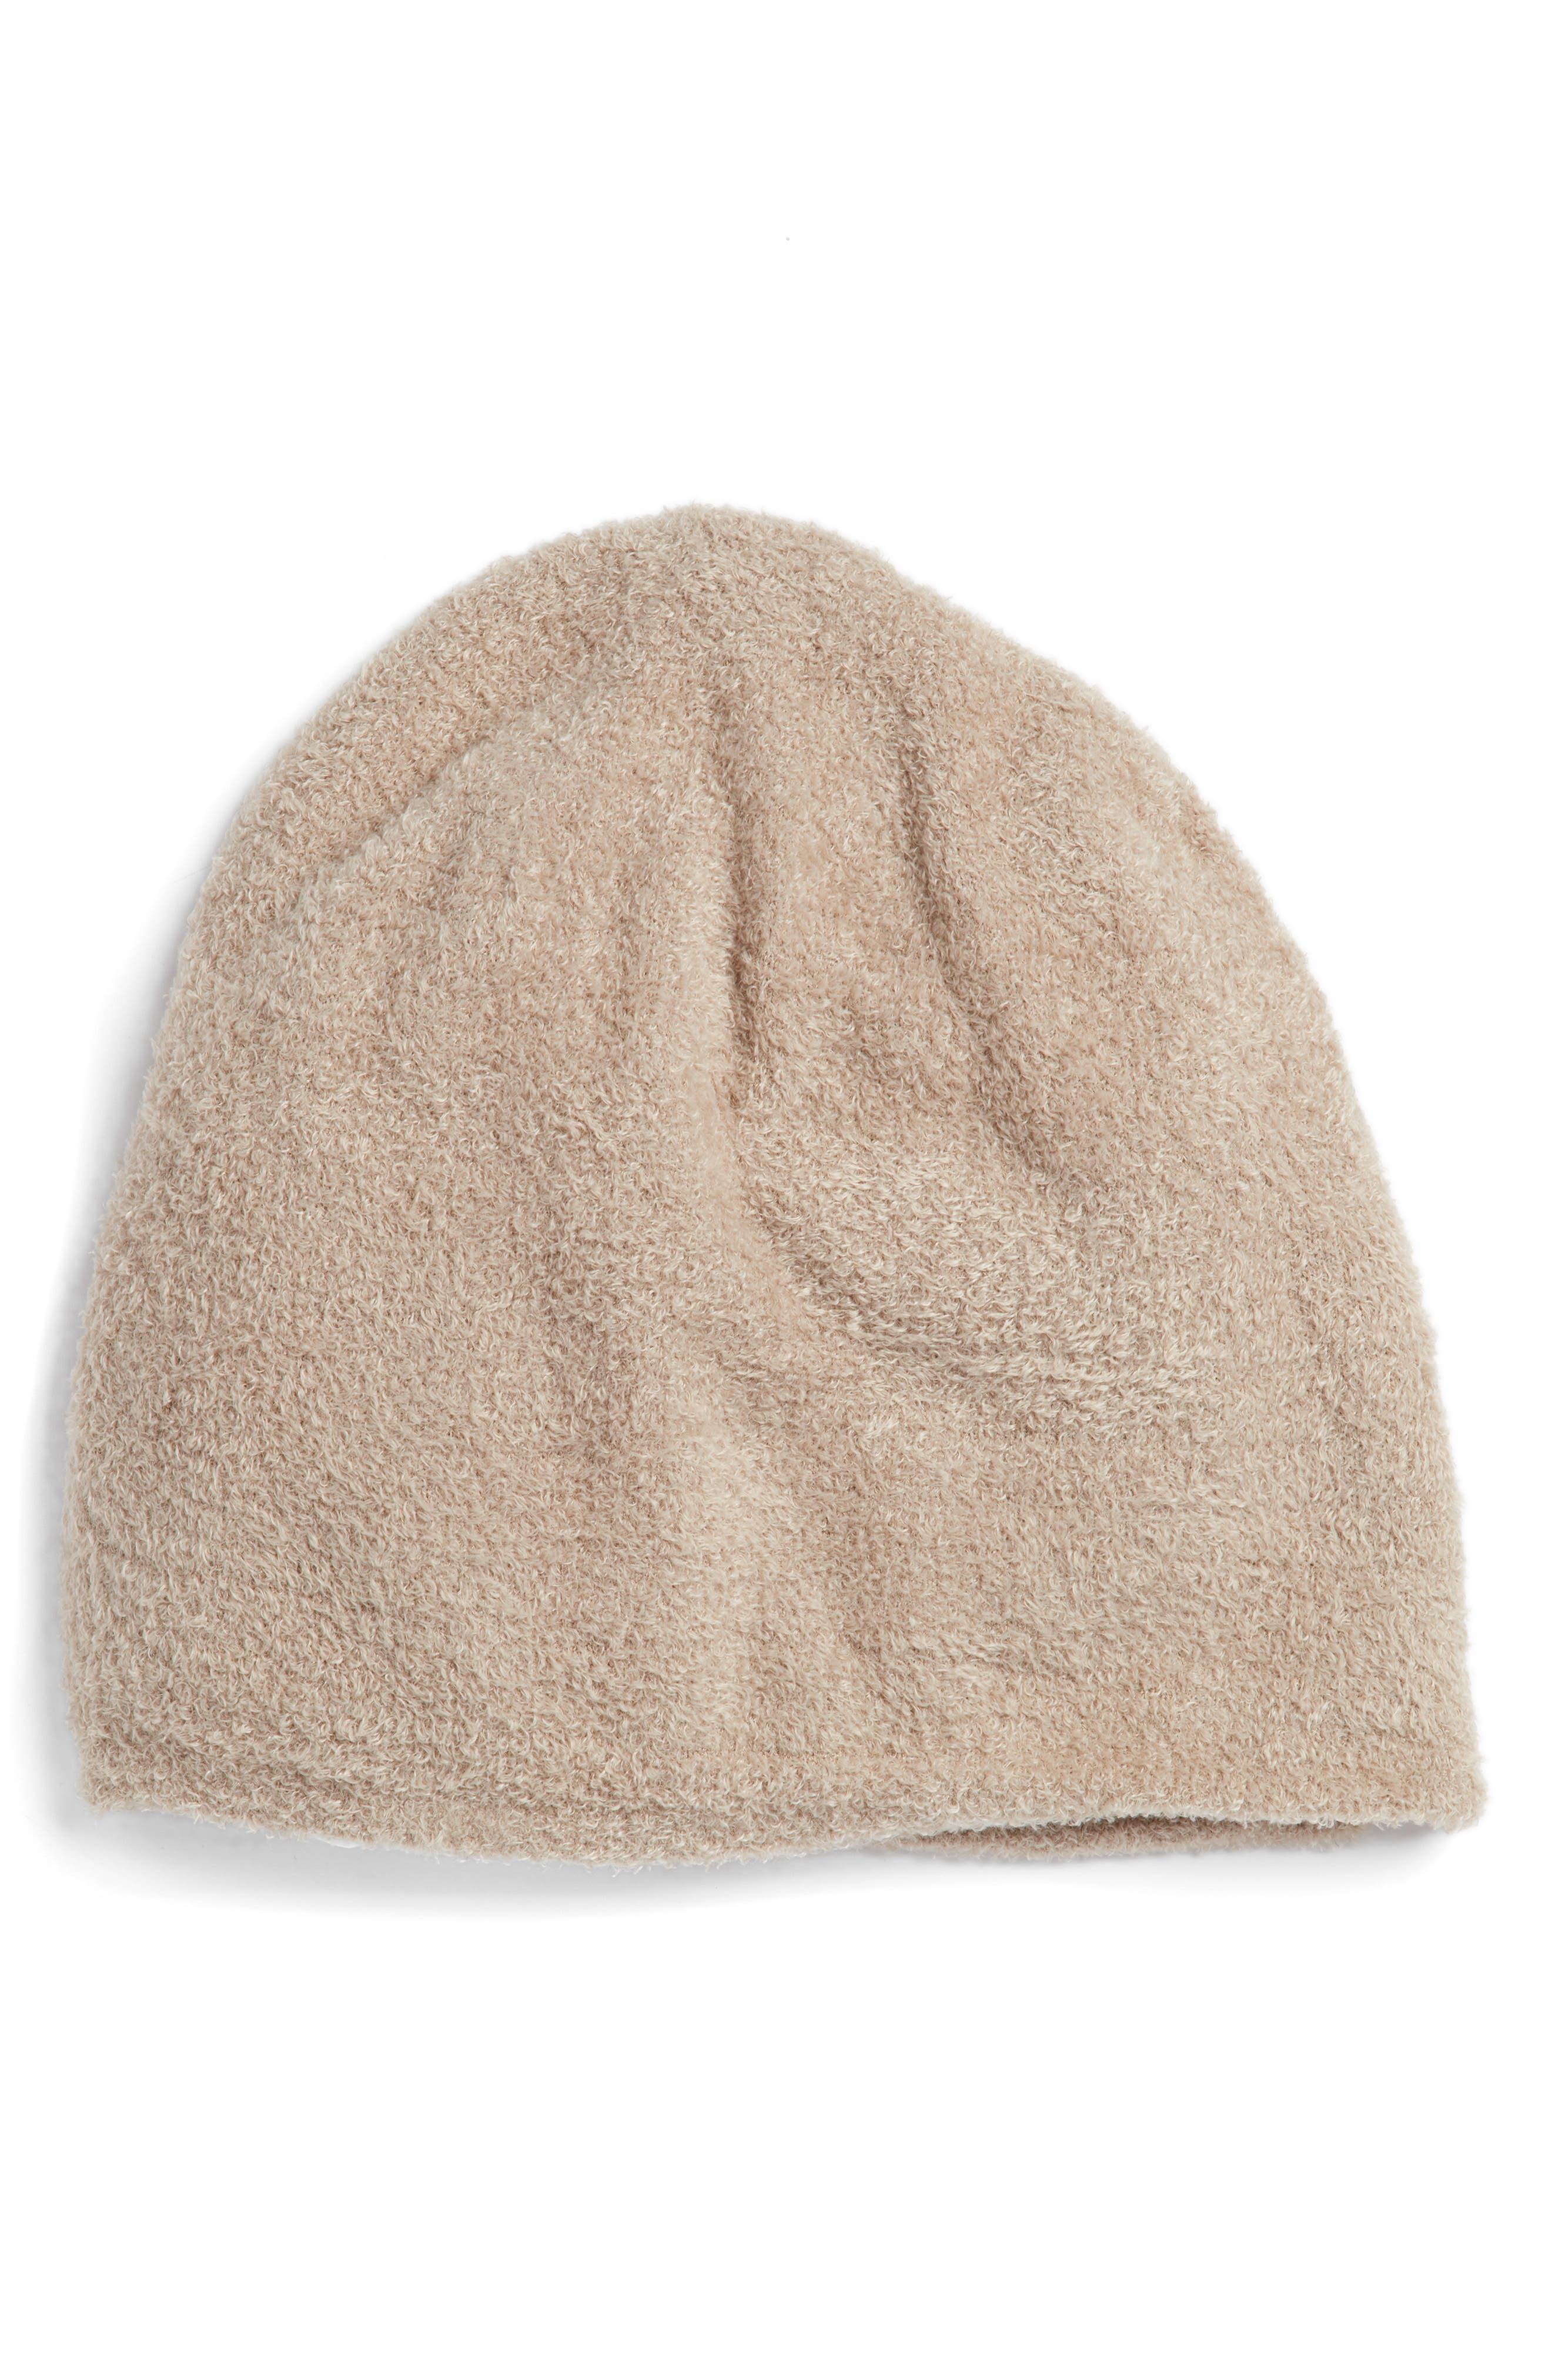 Alternate Image 1 Selected - Barefoot Dreams® CozyChic Lite® Beanie